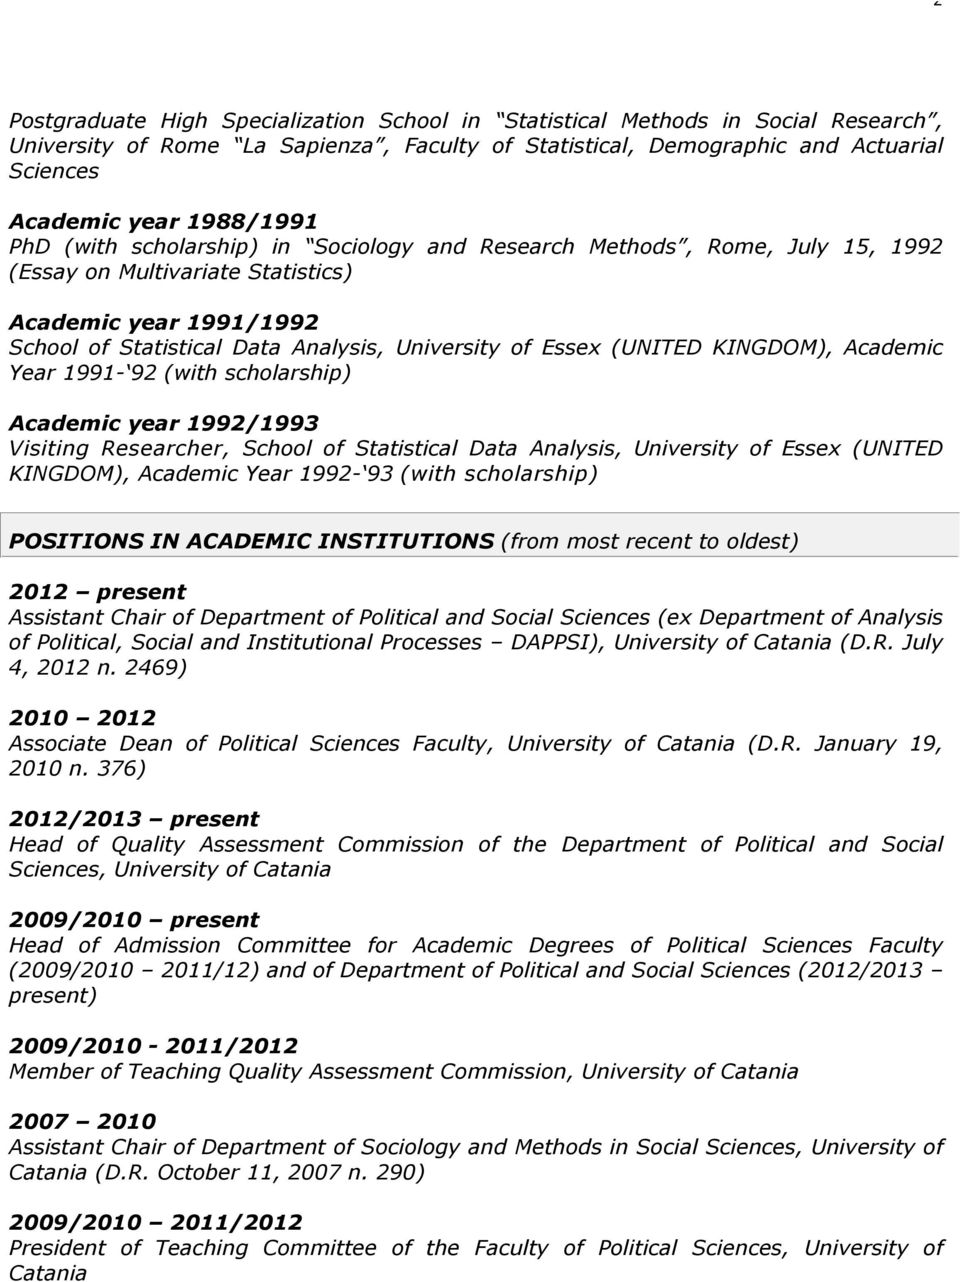 (UNITED KINGDOM), Academic Year 1991-92 (with scholarship) Academic year 1992/1993 Visiting Researcher, School of Statistical Data Analysis, University of Essex (UNITED KINGDOM), Academic Year